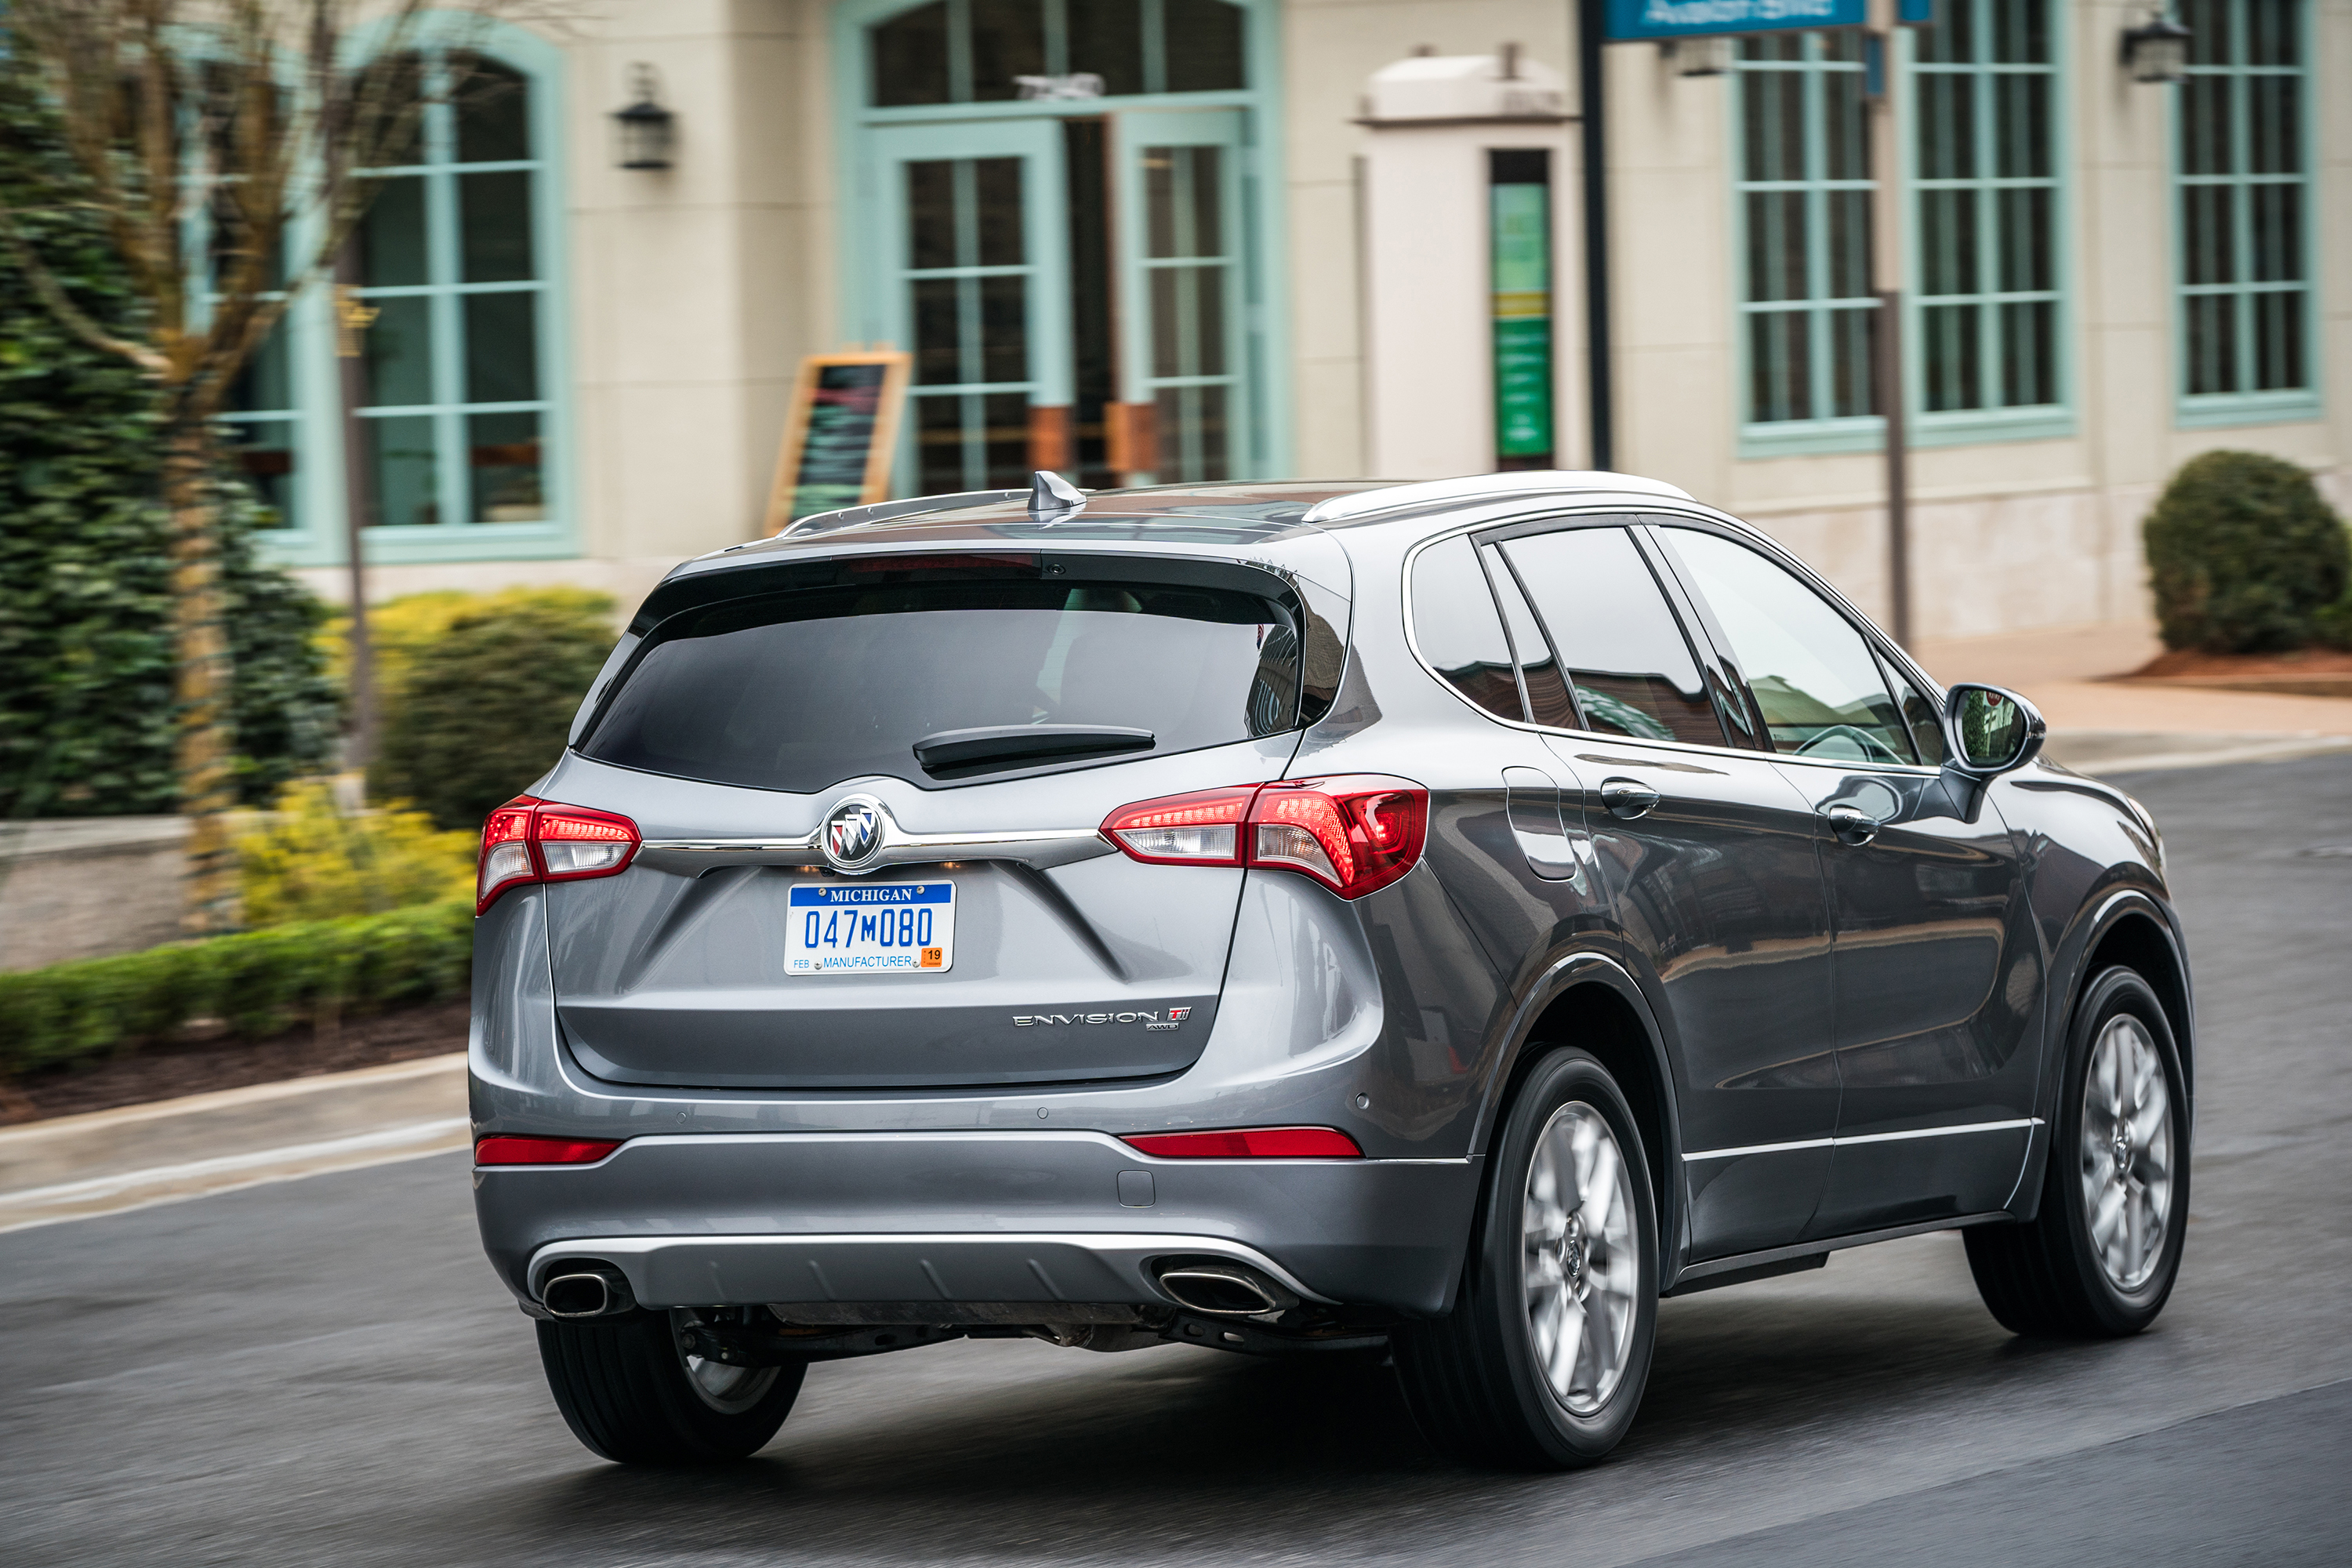 gmc at joliet suv envision d specials select arcy buick